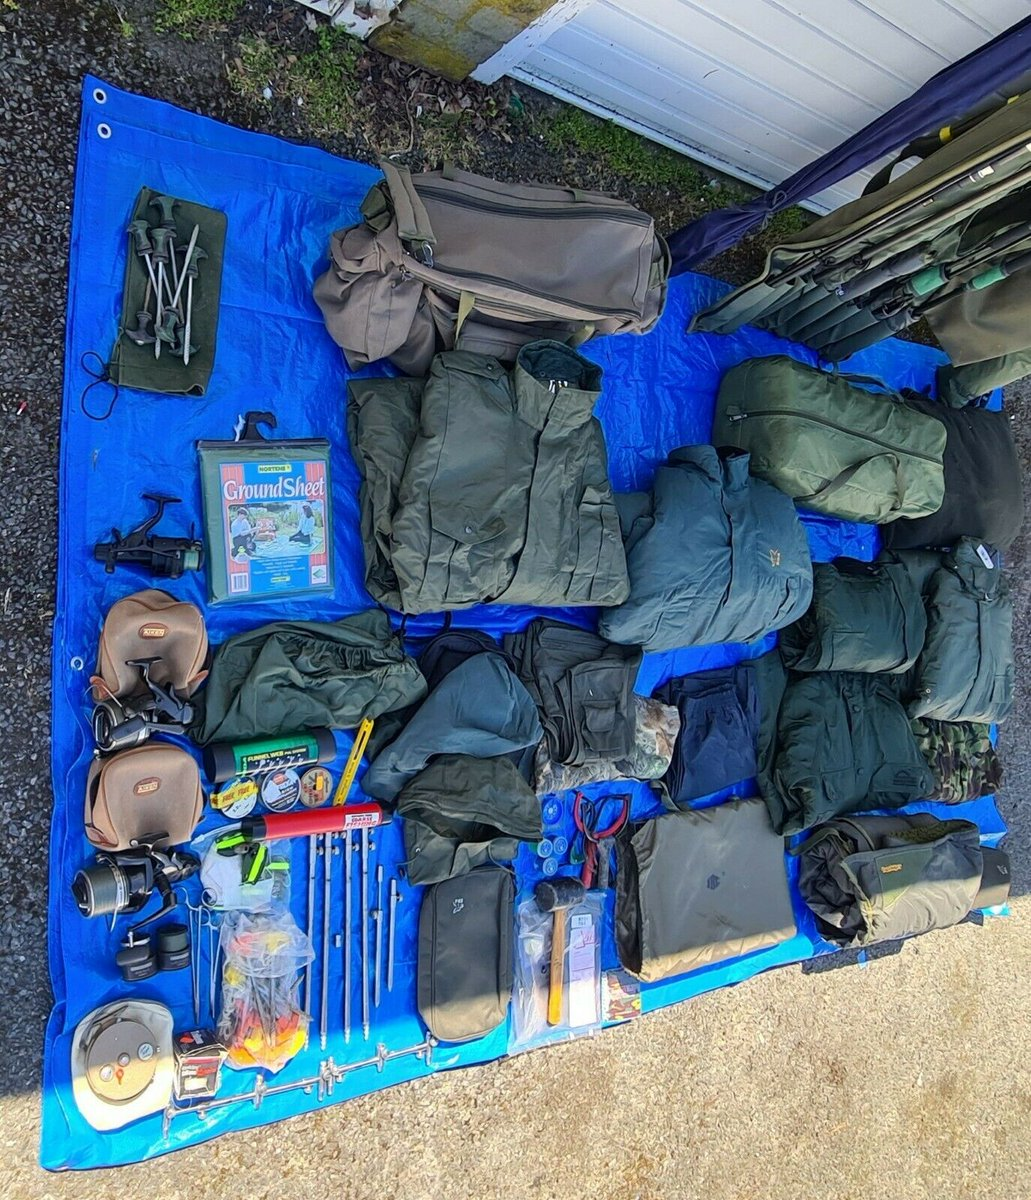 Ad - Complete Fishing Set Up For Sale On eBay here -->> https://t.co/MO6ihpiOCL  #carpfishing